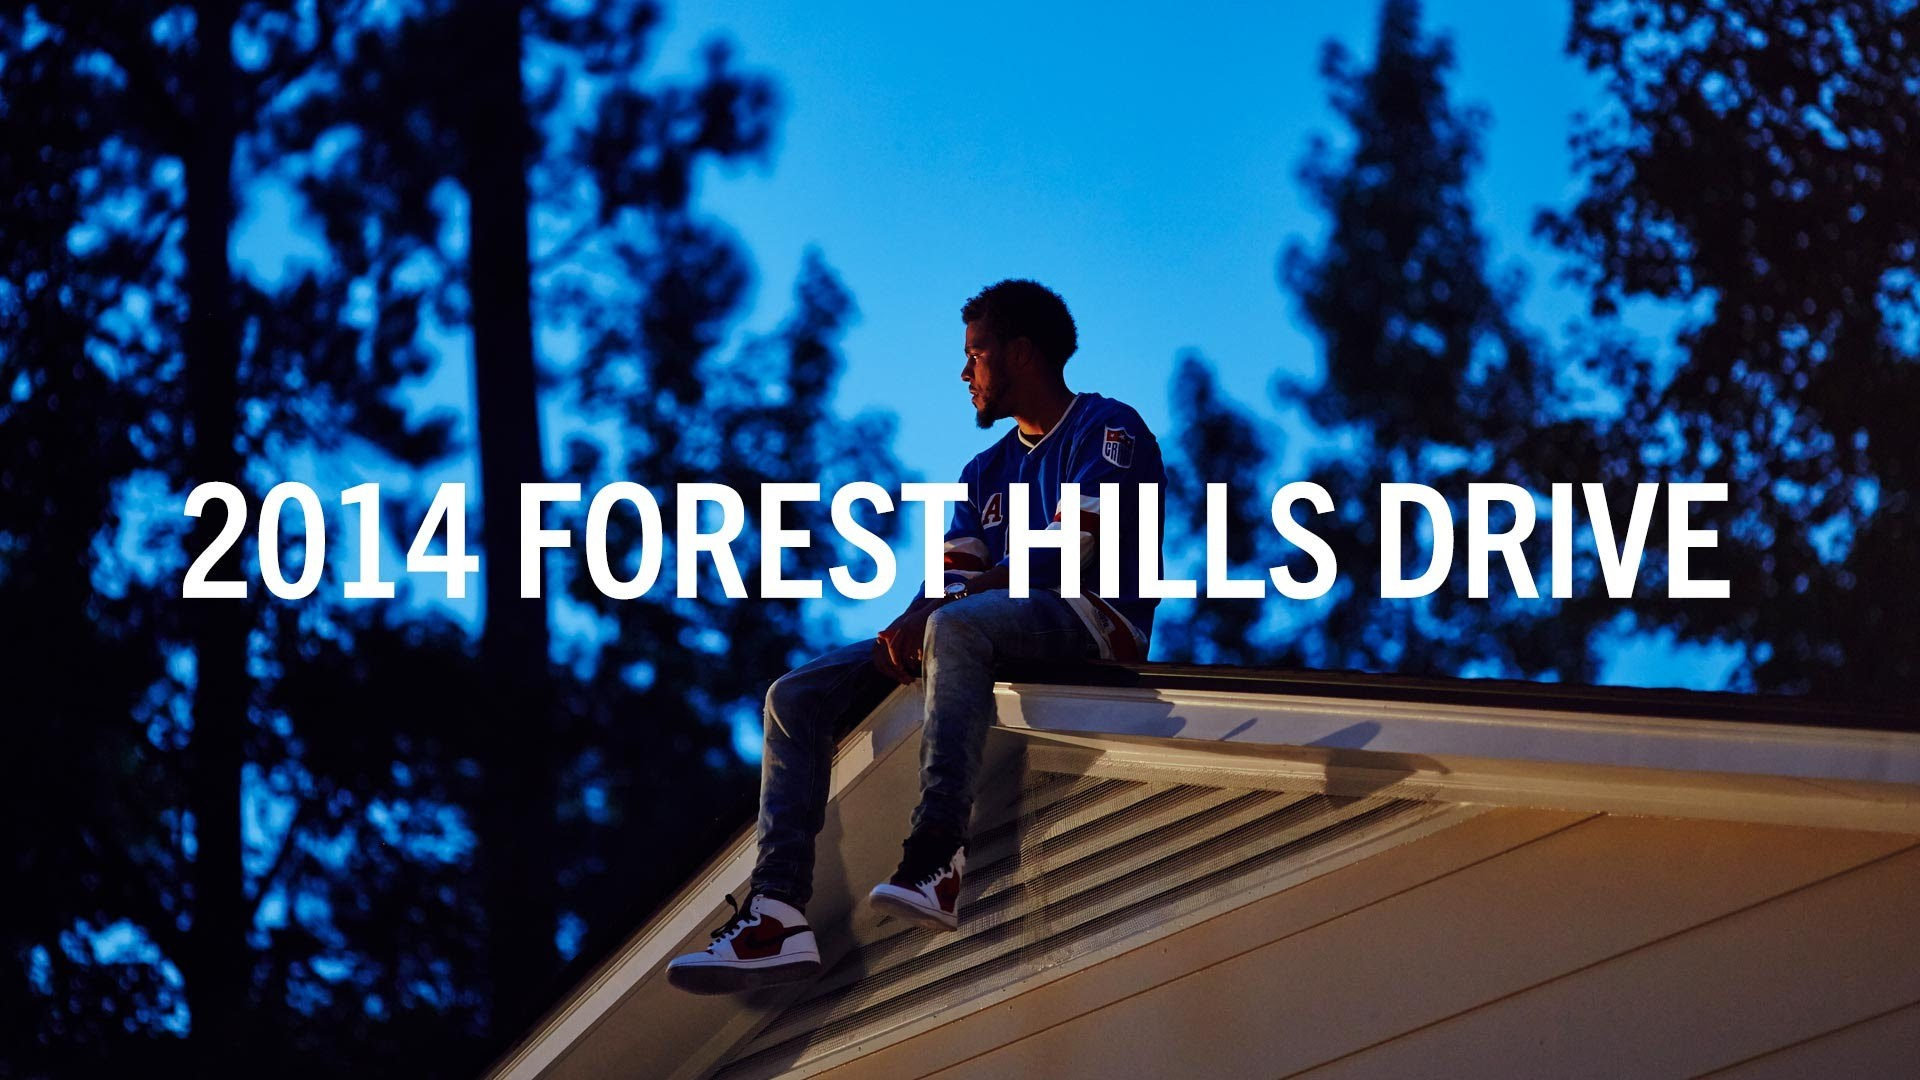 2014 forest hills drive wallpaper 67 images 1920x1080 2014 forest hills drive braden young november 17 2014 cover music 0 voltagebd Images